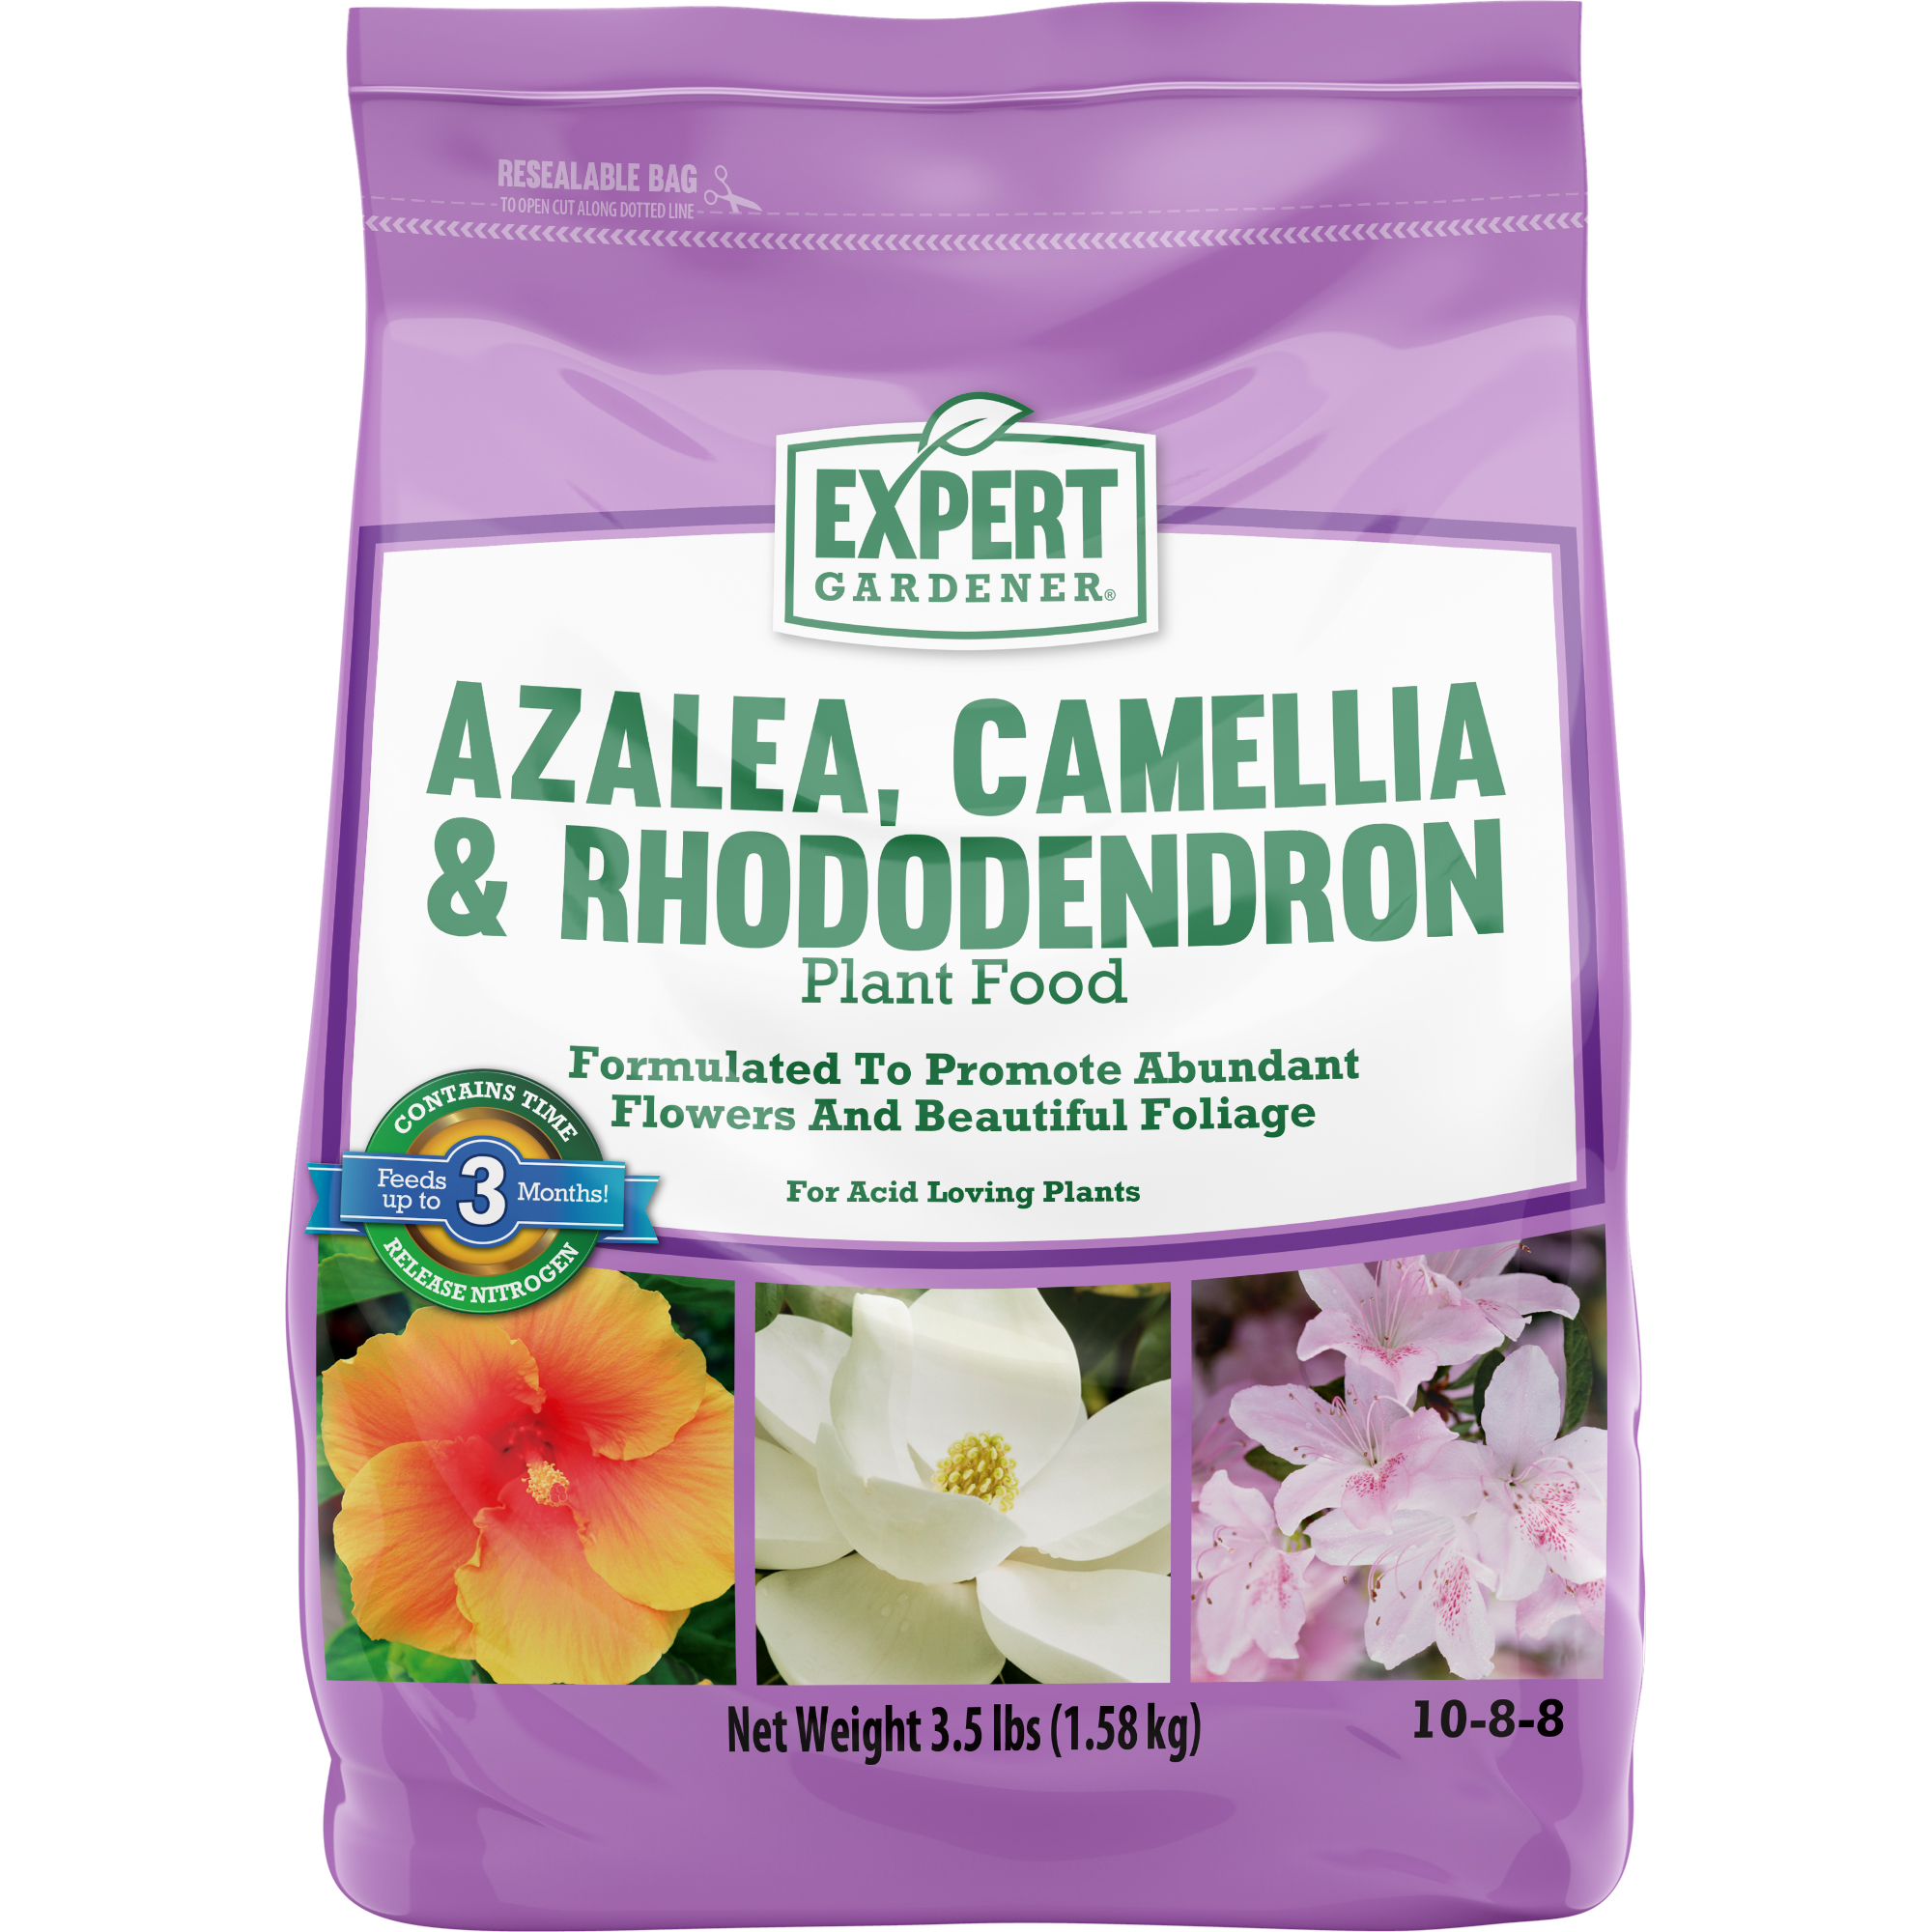 Expert Gardener Azalea, Camellia, and Rhododendron Plant Food 10-8-8, 3.5 Pounds